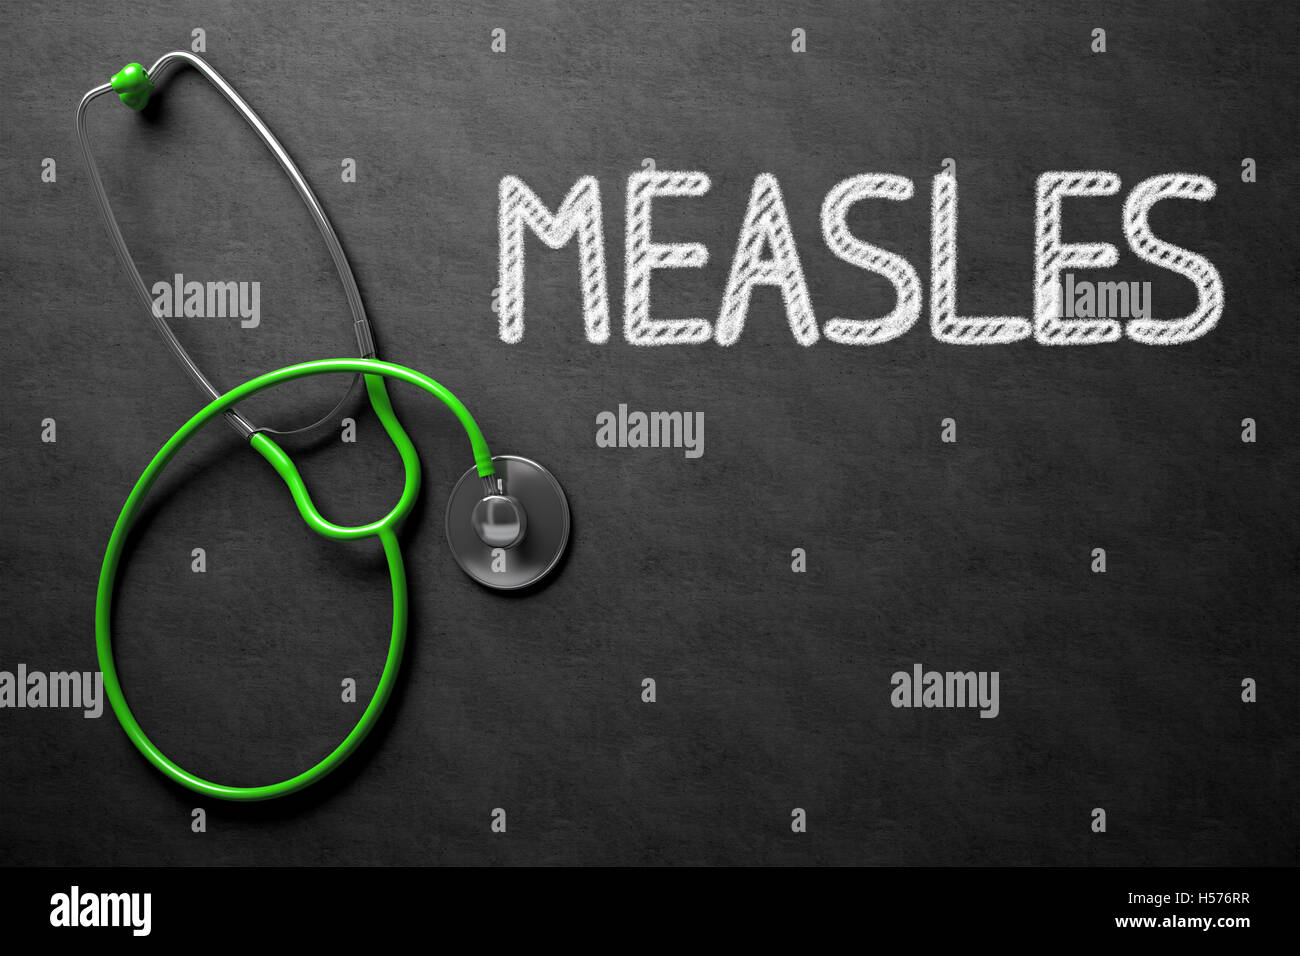 Measles - Text on Chalkboard. 3D Illustration. Stock Photo